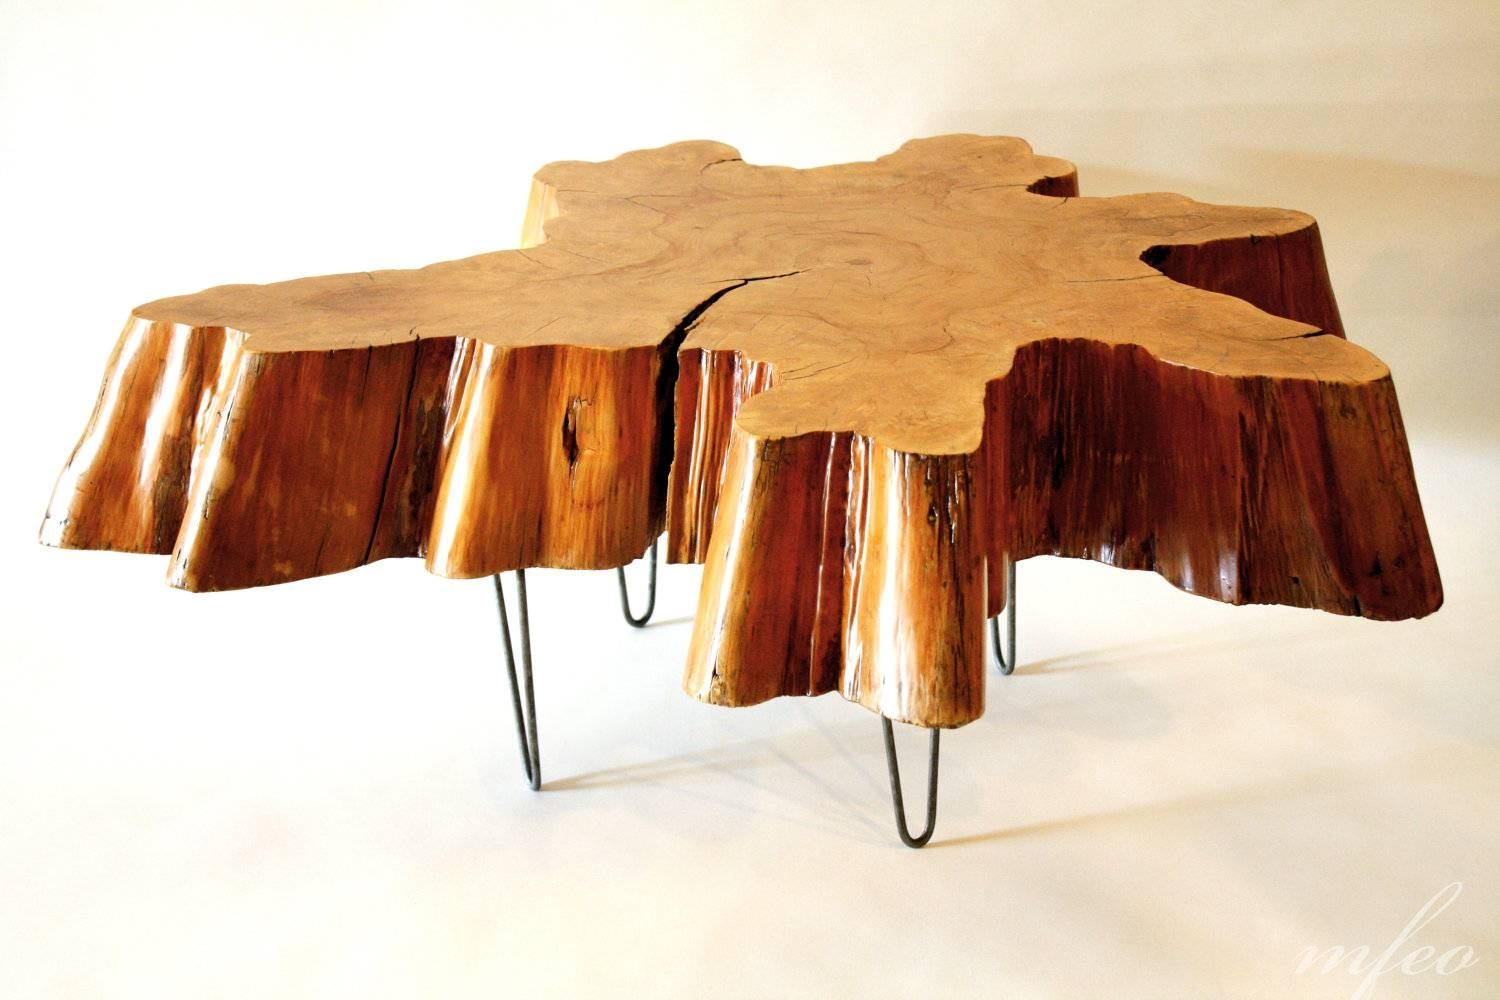 Amazing Tree Trunk Coffee Table Design Ideas – Tree Stump Side for Stainless Steel Trunk Coffee Tables (Image 1 of 30)